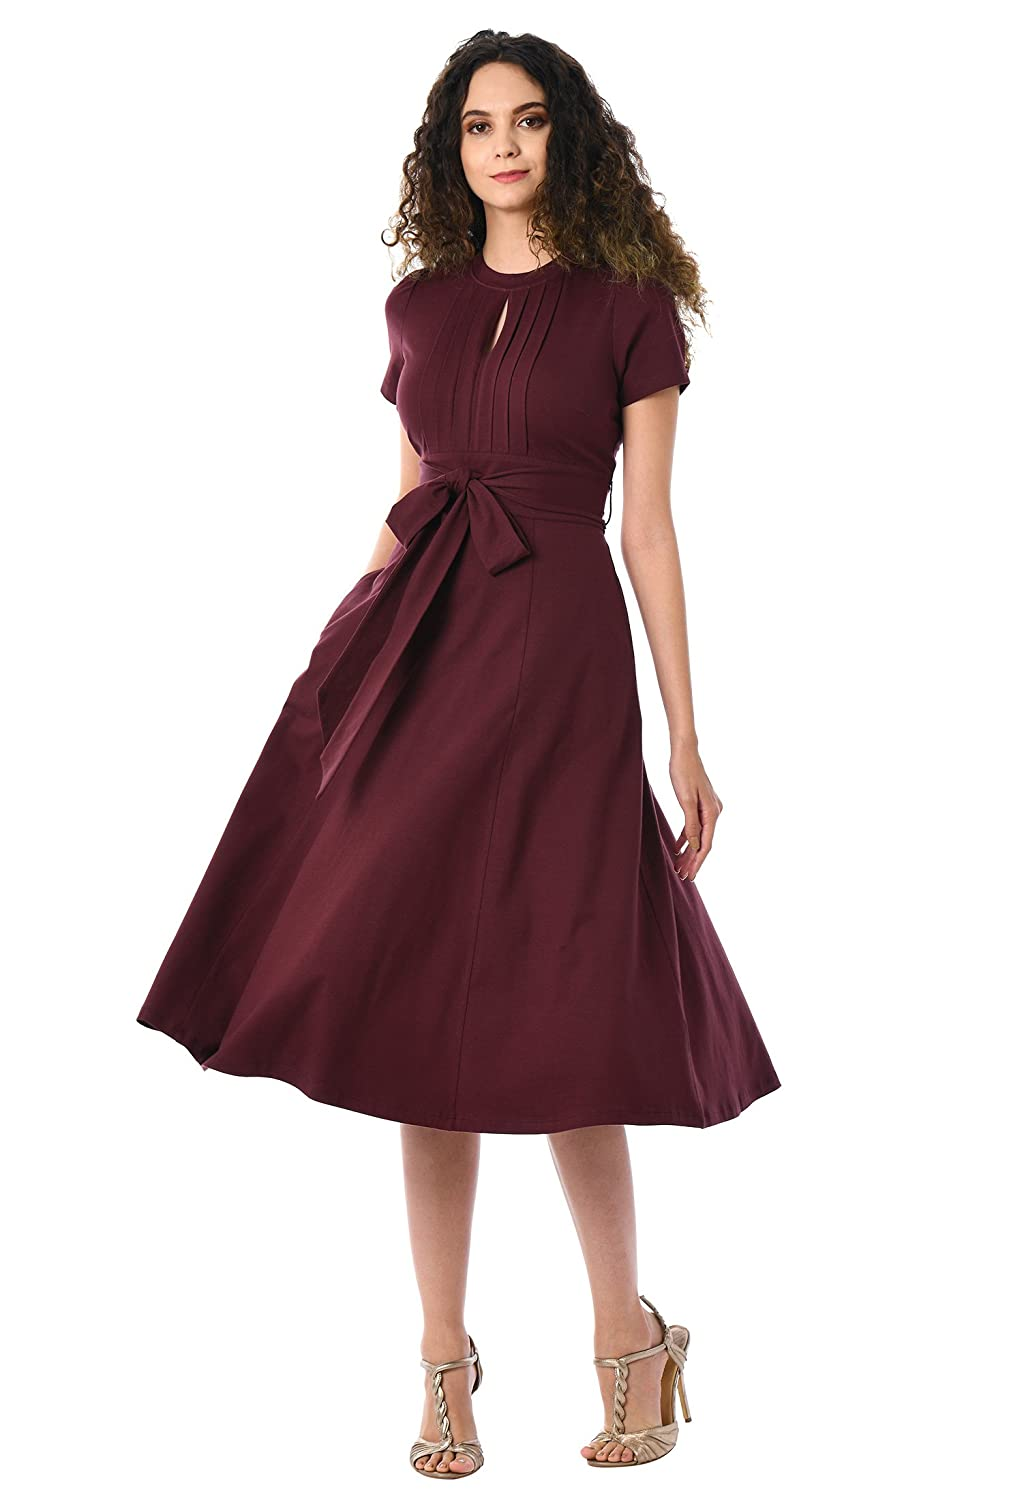 1940s Plus Size Clothing: Dresses History eShakti Womens Tux Pleat Front Cotton Knit Dress $59.95 AT vintagedancer.com